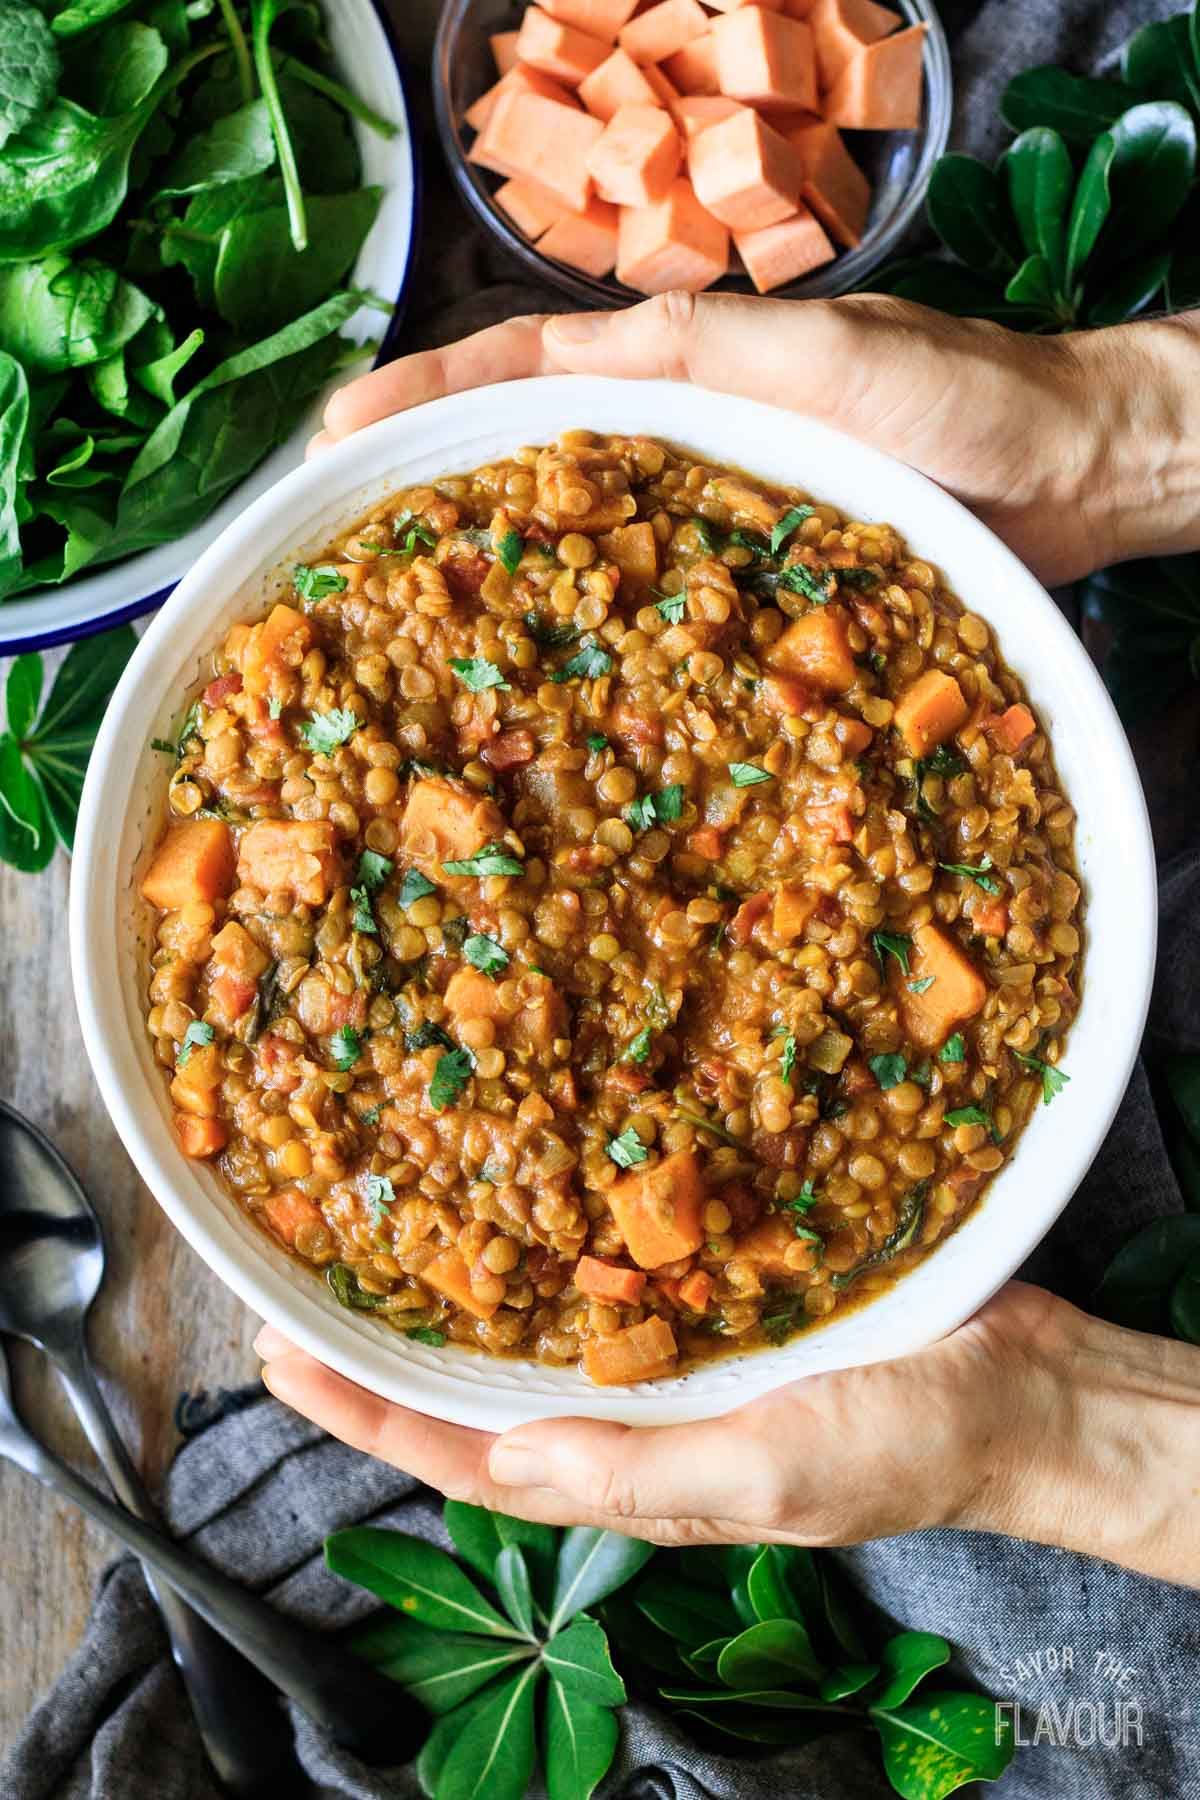 person holding a bowl of Moroccan lentil stew